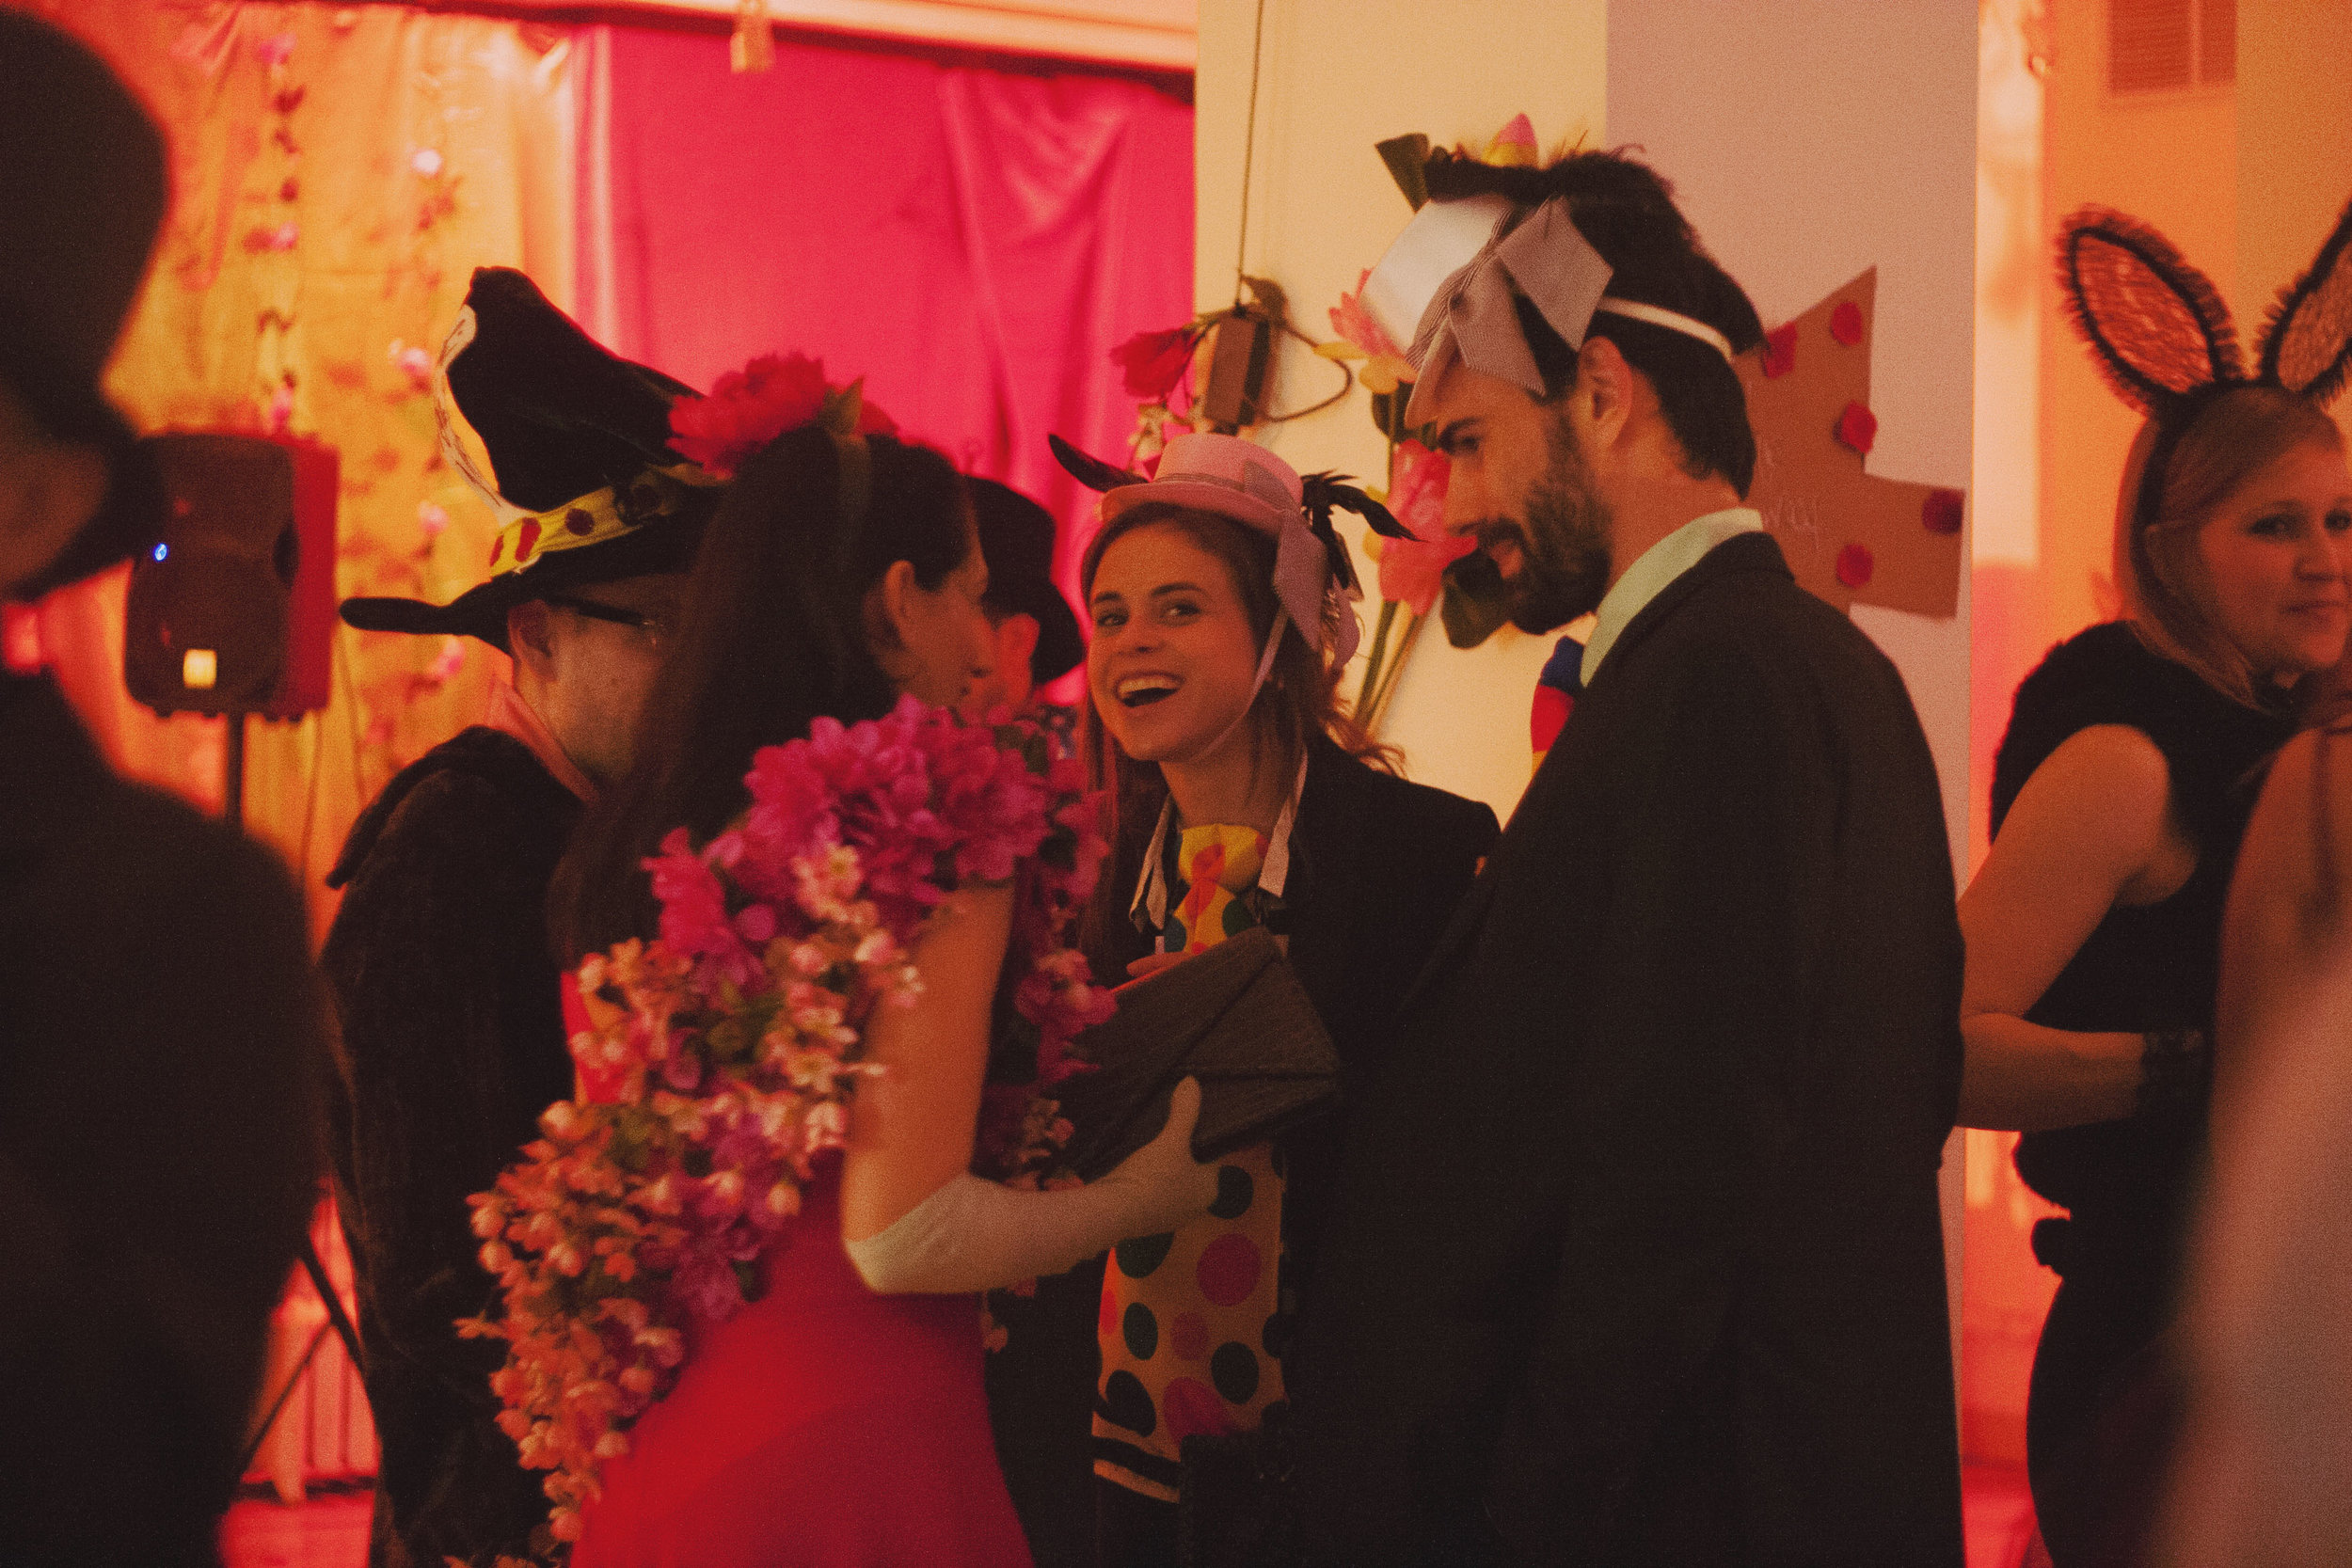 ny-events-costume-parties-decoration84.jpg